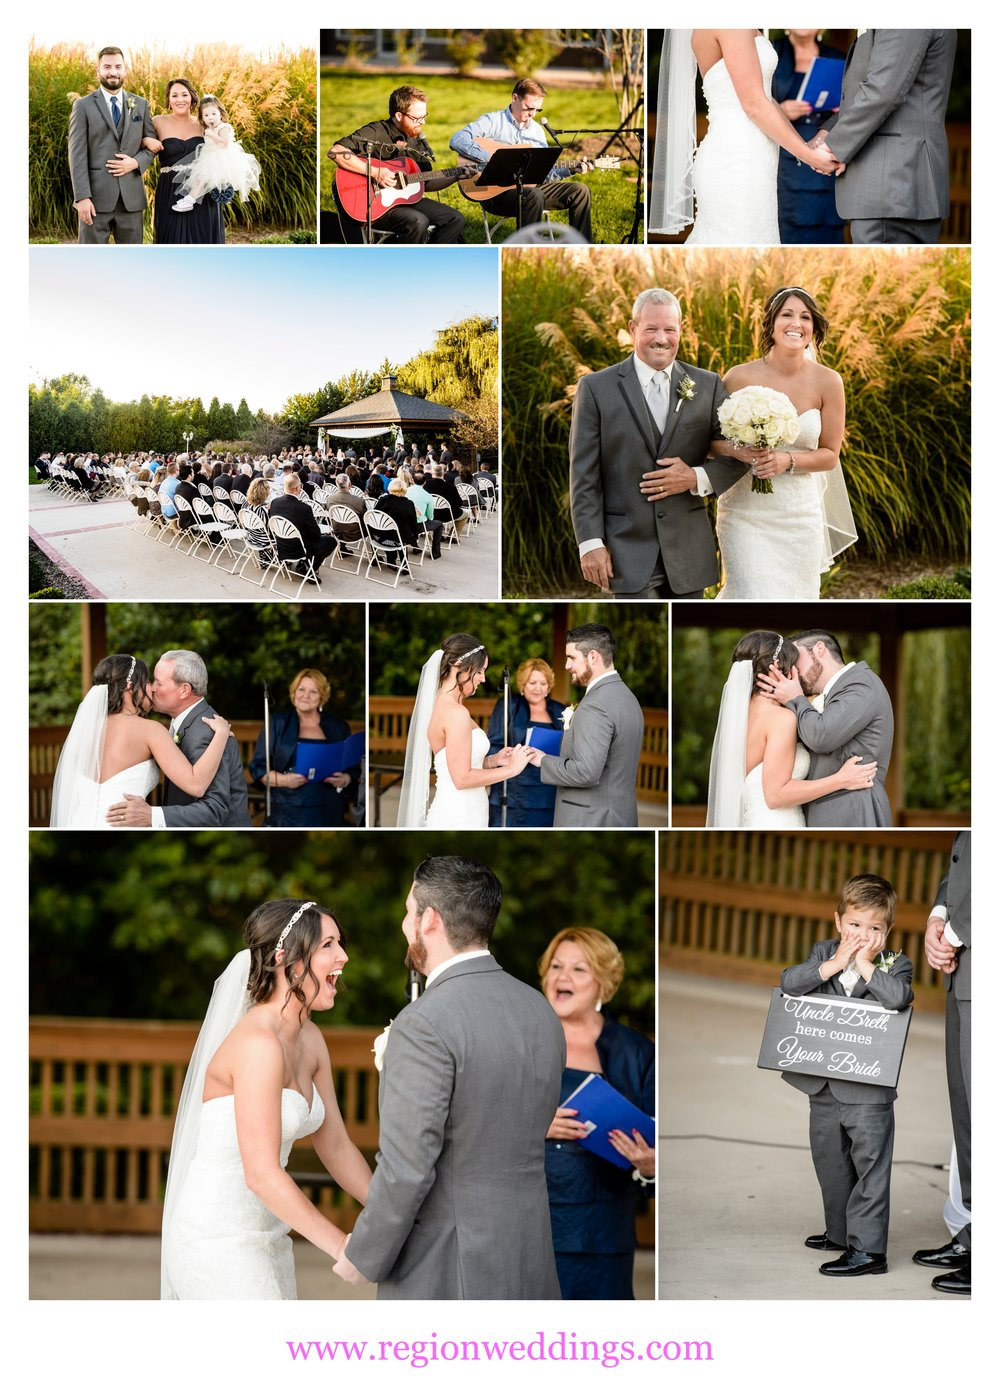 Outdoor wedding ceremony at Avalon Manor.